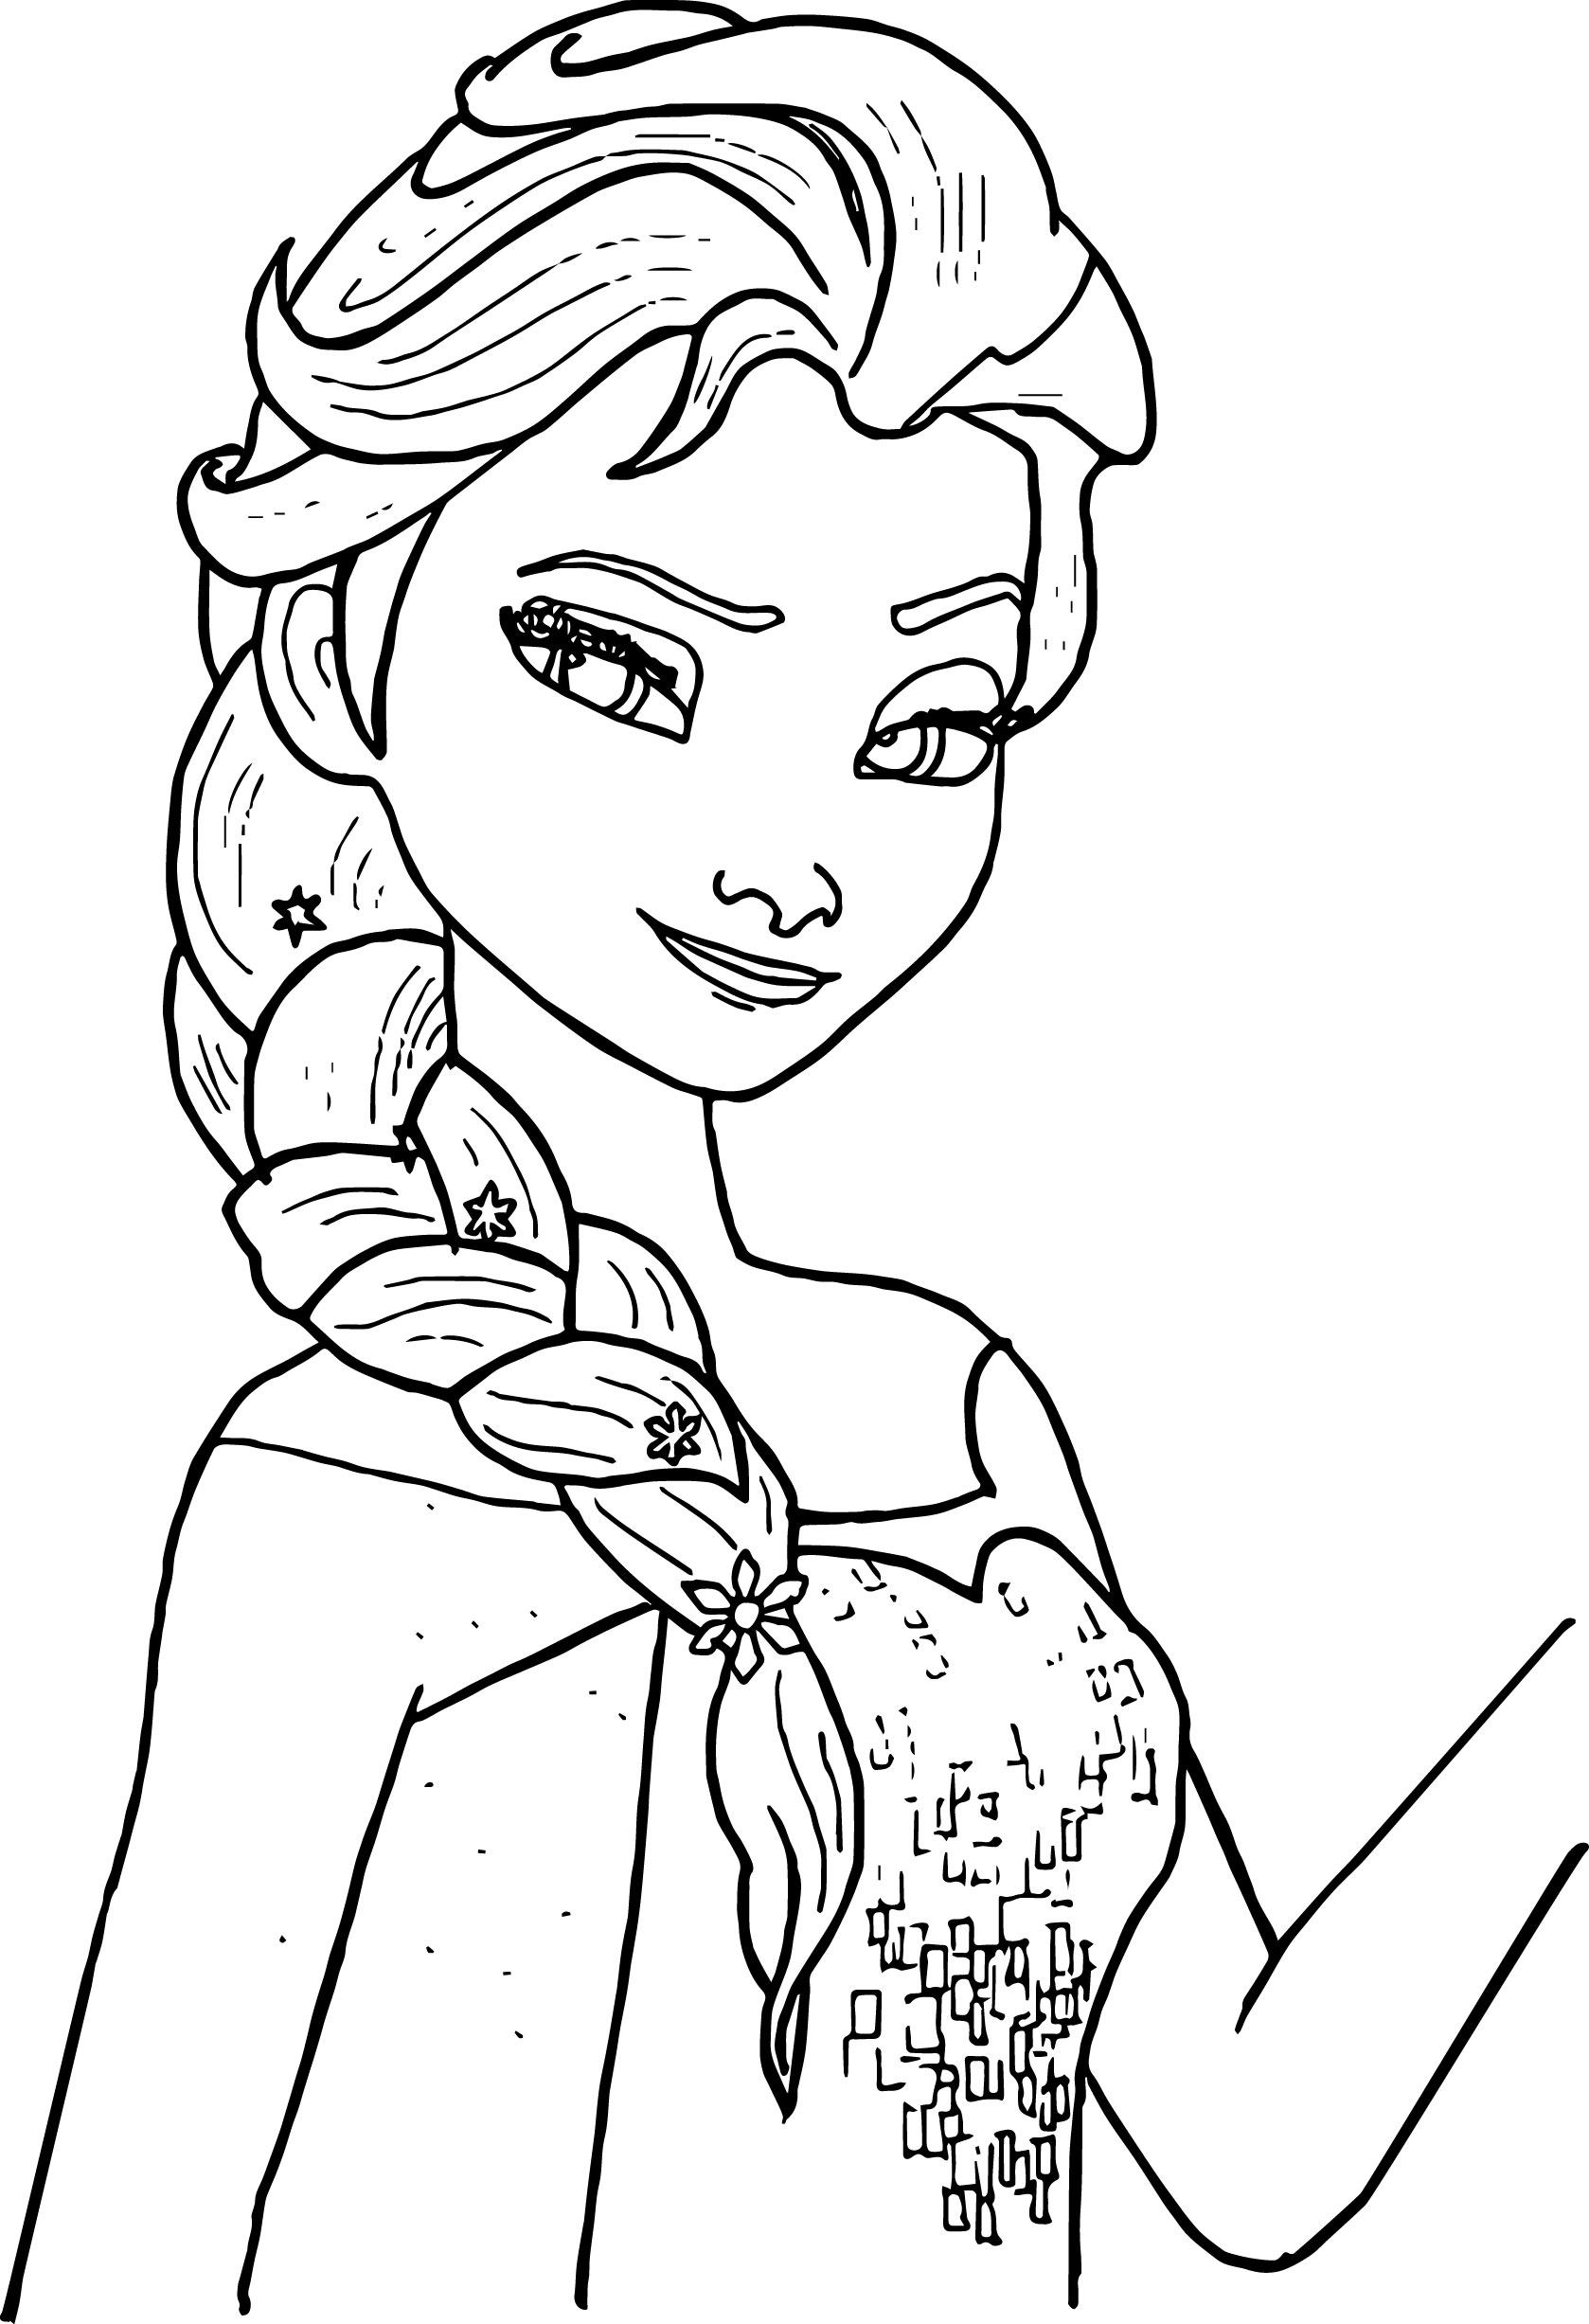 elsa coloring pages free - free printable elsa coloring pages kids